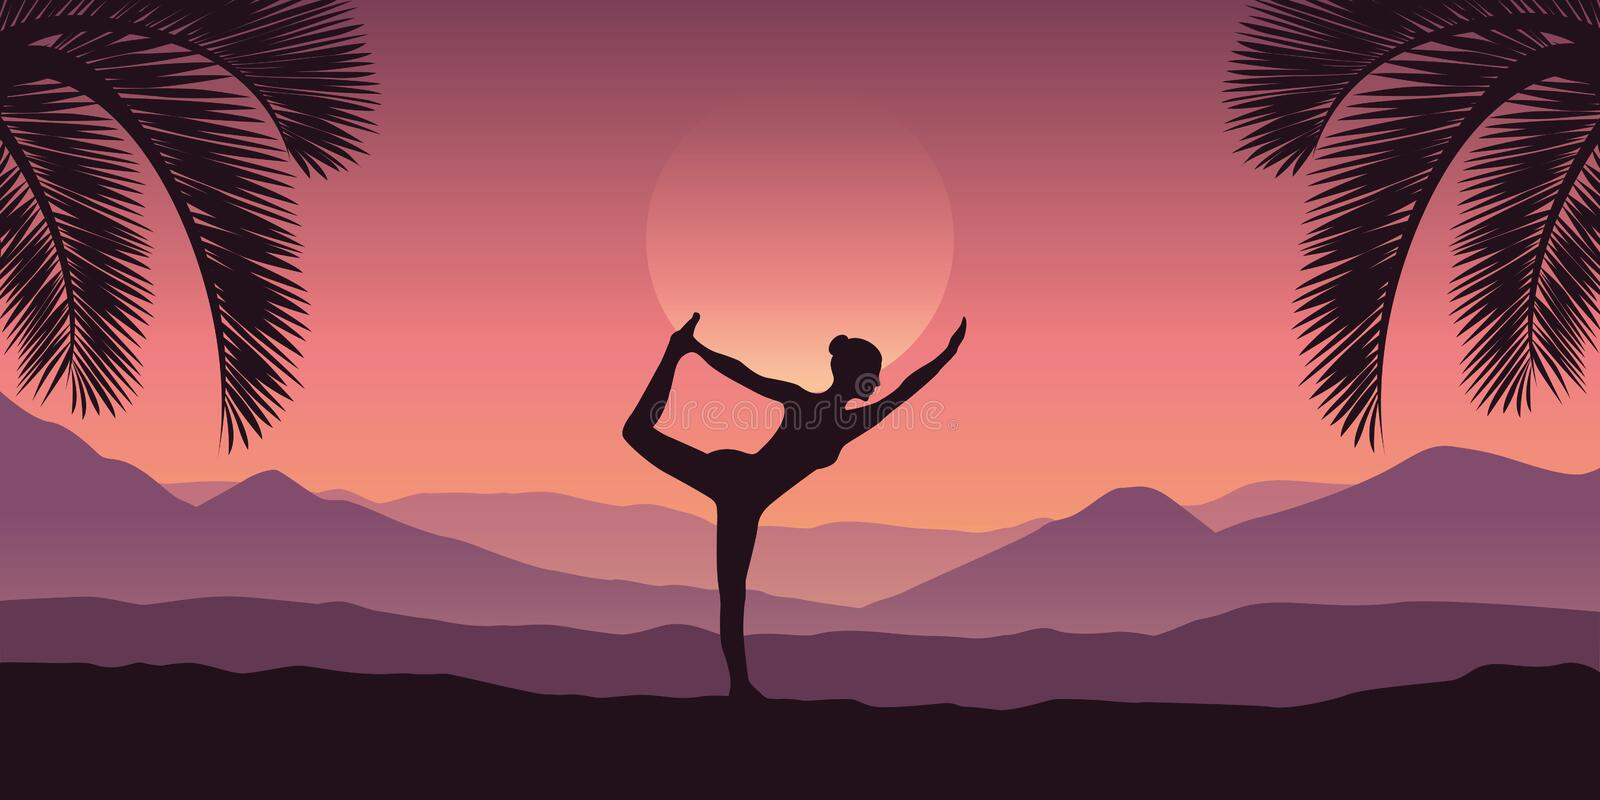 Girl makes yoga at tropical red mountain landscape in purple colors. Vector illustration EPS10 royalty free illustration